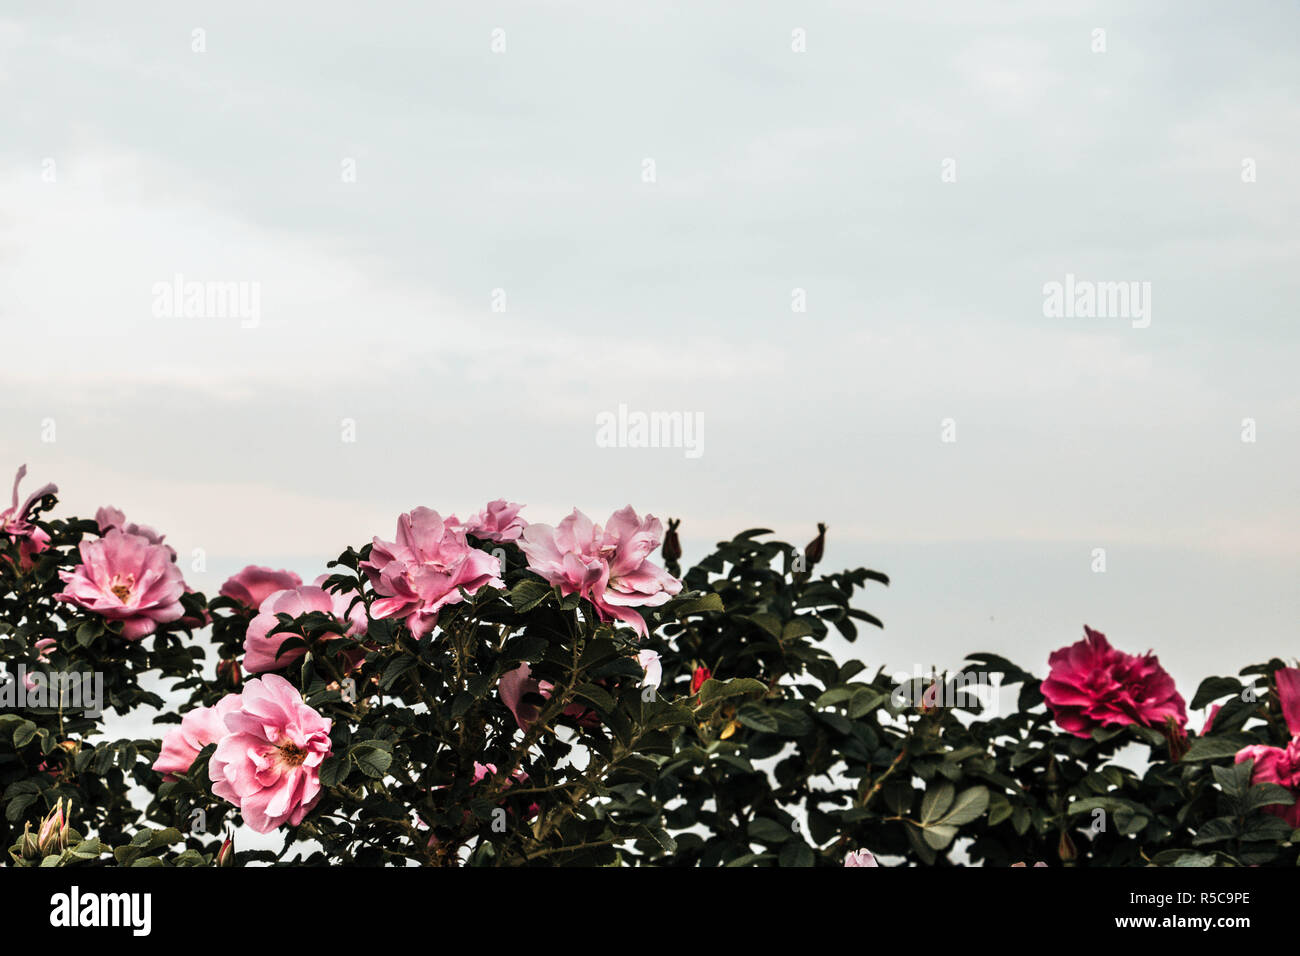 A rosehip bush with sky as a background. - Stock Image